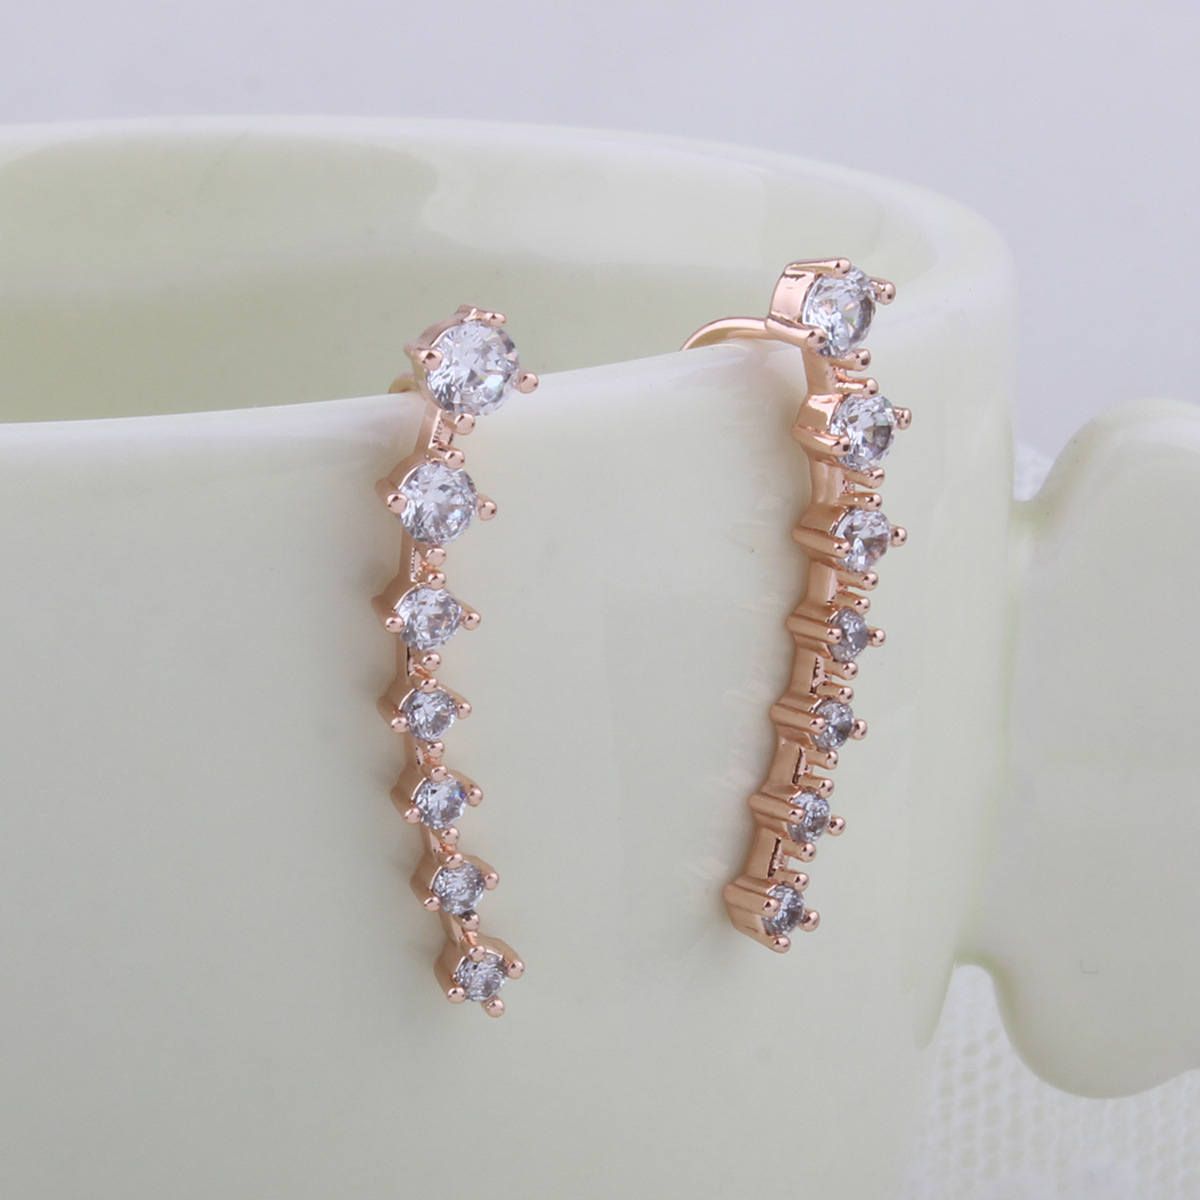 Korea style alloy plating earring (Rose gold)NHNMD3812-Rose gold